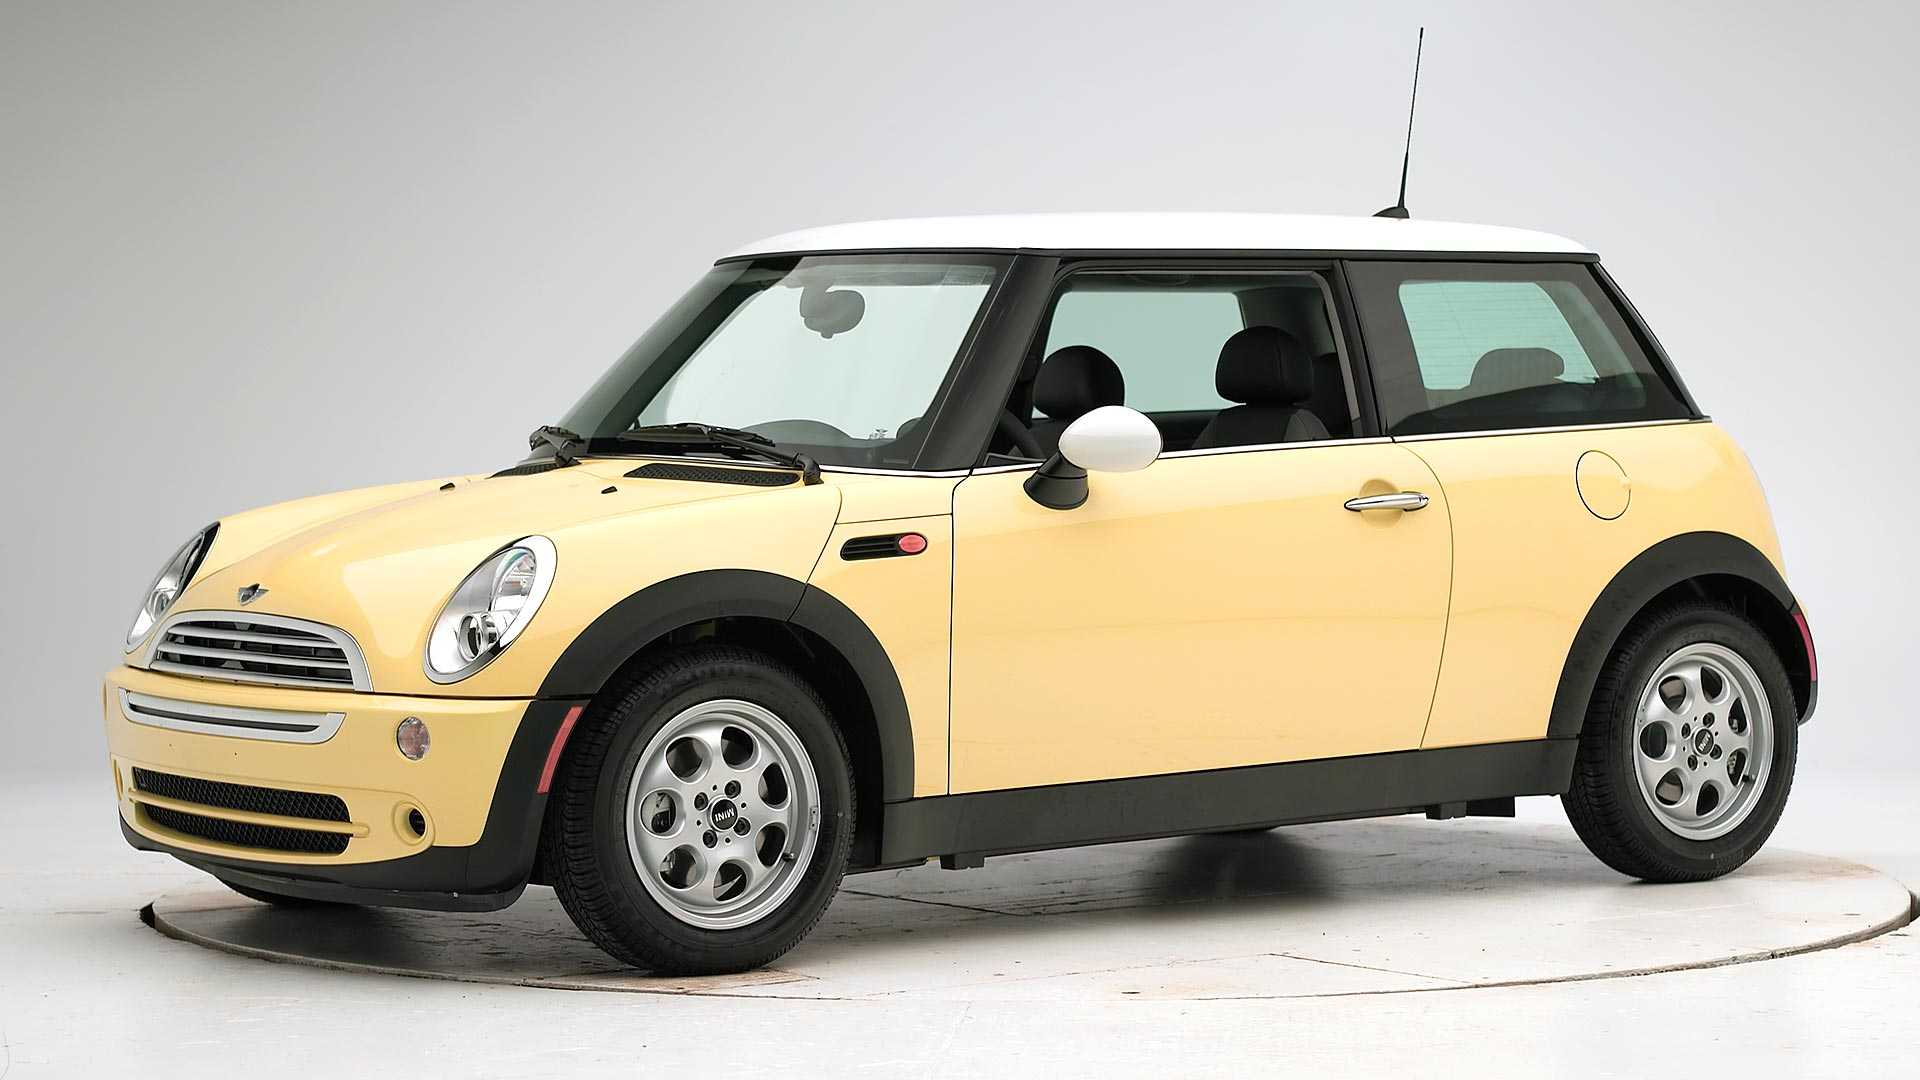 2006 Mini Cooper 2-door hatchback